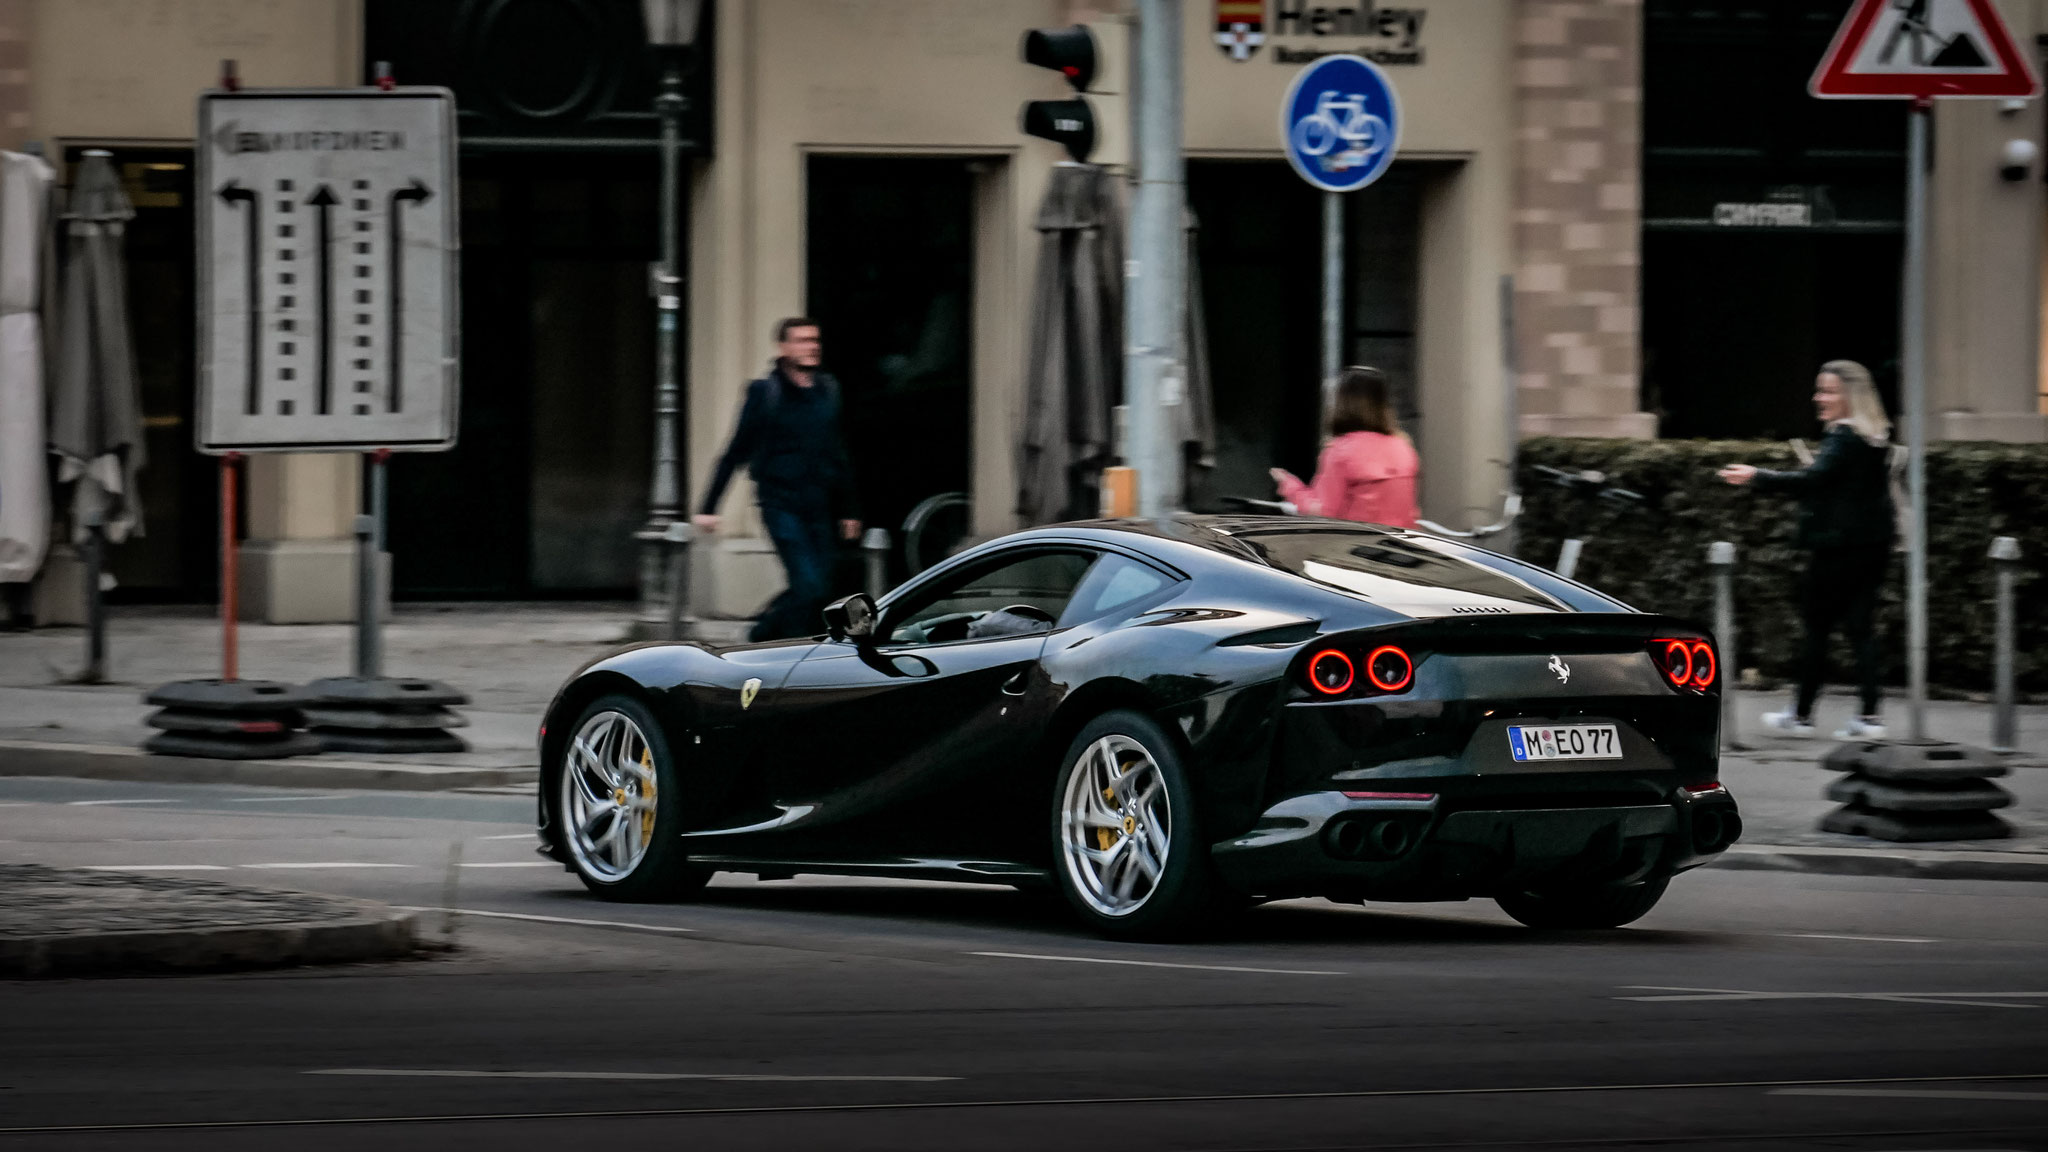 Ferrari 812 Superfast - M-EO-77